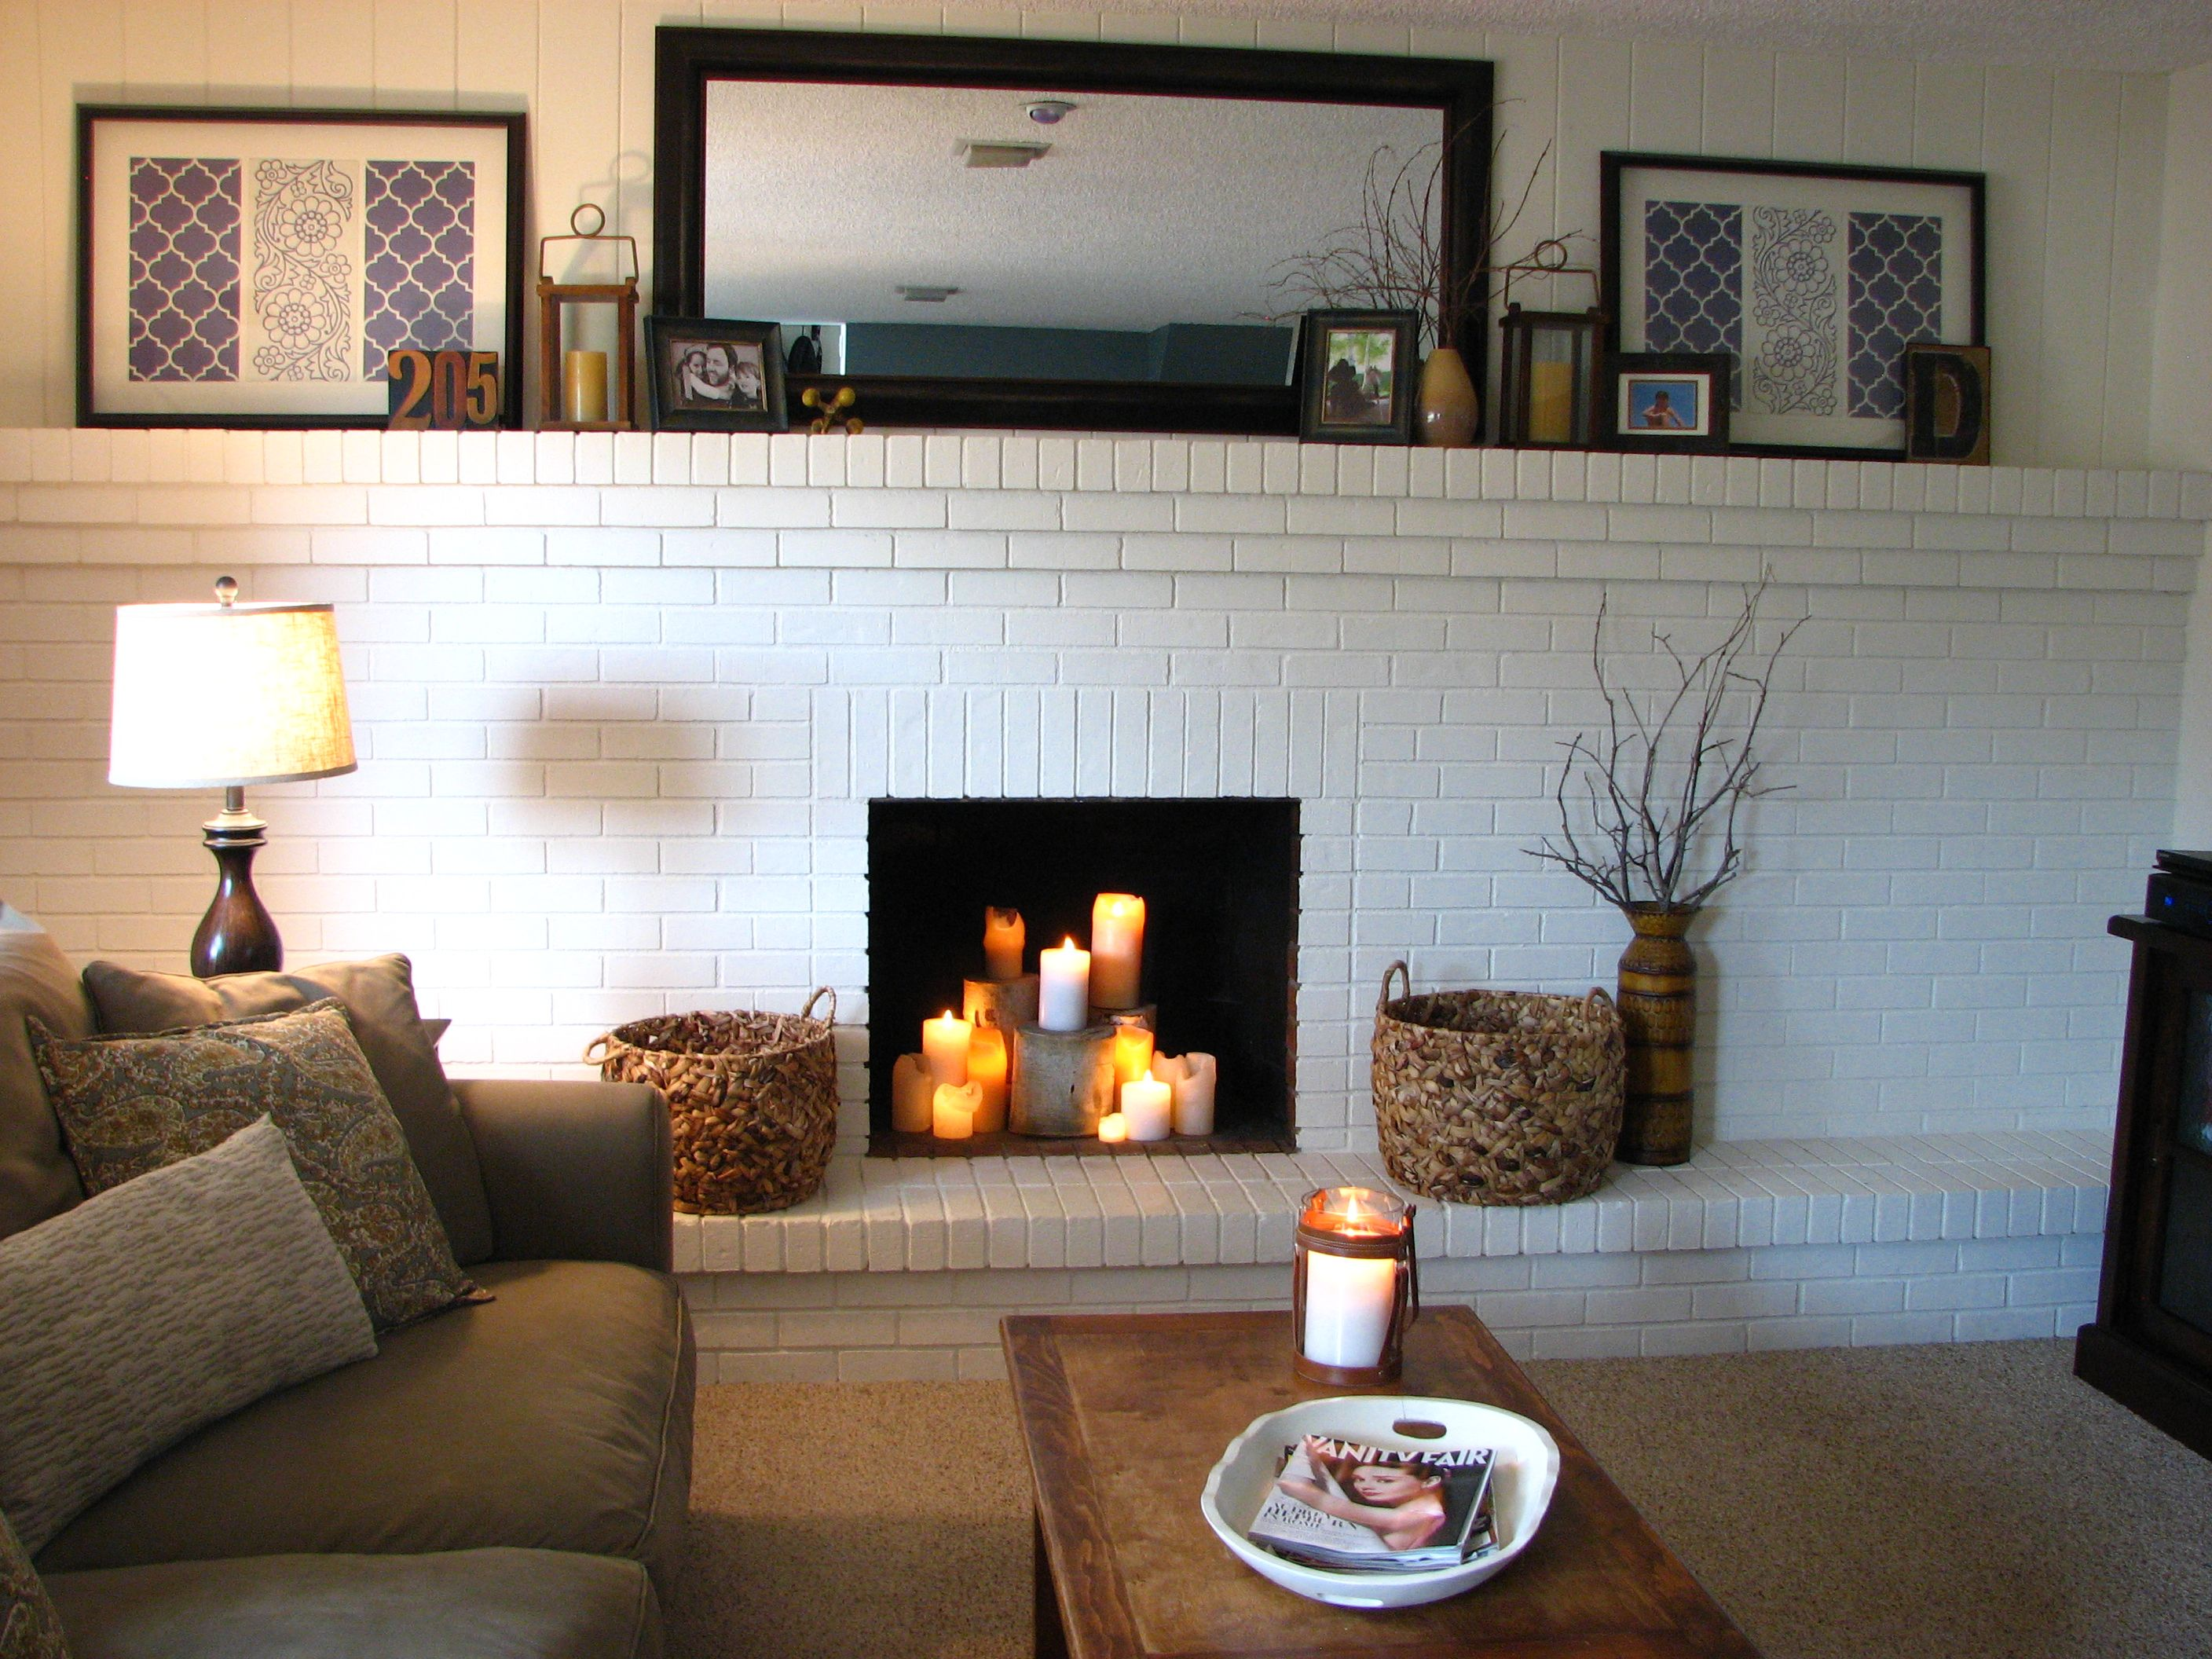 All In The Family Room Painted Brick Fireplace Painted Brick Fireplaces Brick Fireplace Makeover Brick Fireplace Wall